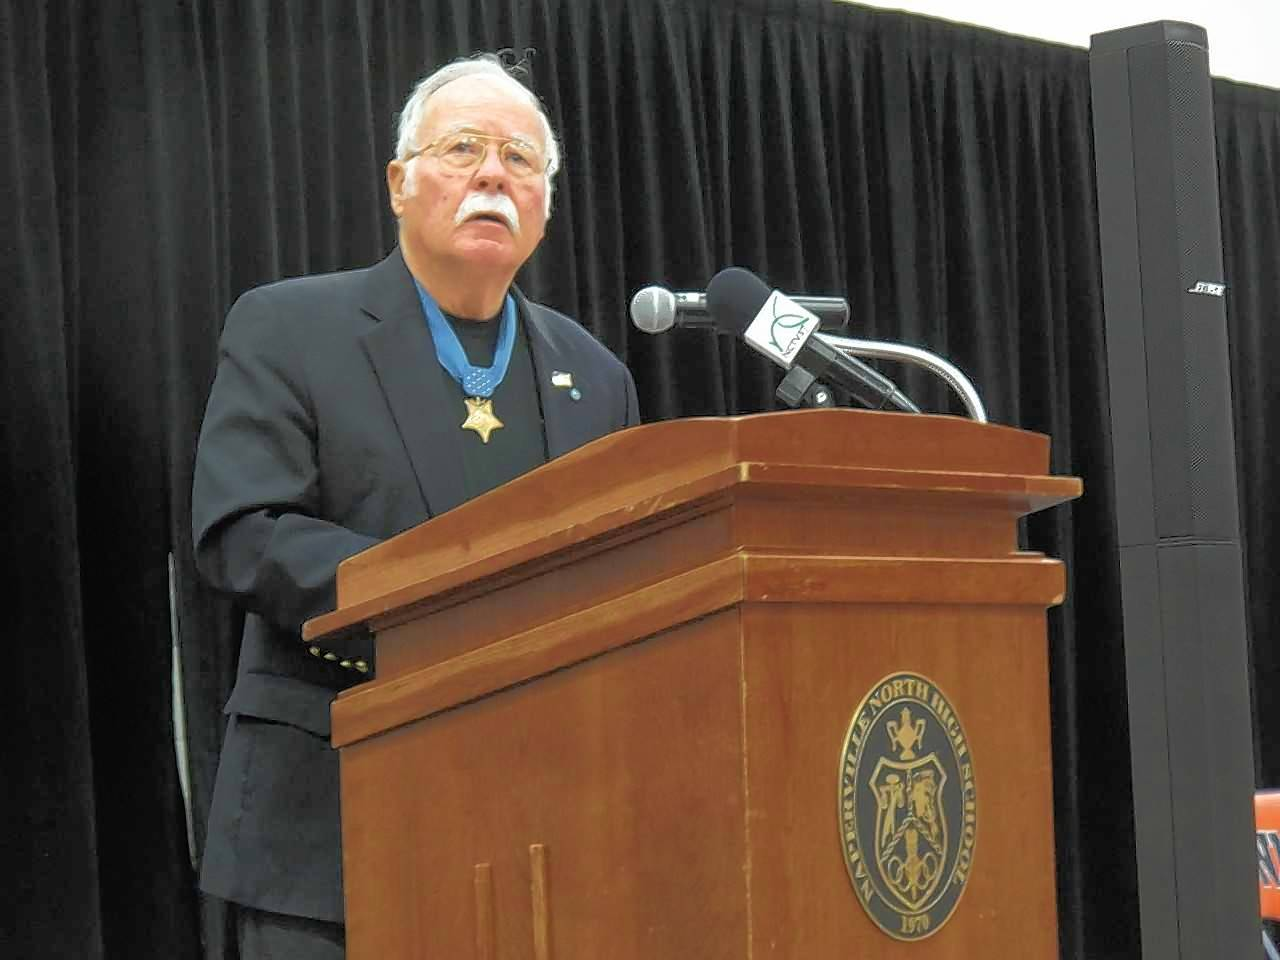 "Retired Marine Col. Harvey Barnum, a recipient of the Medal of Honor, speaks Friday at Naperville North High School. Barnum answered students' questions about his service during the Vietnam War and gave ""grandfatherly advice"" about setting high goals and never giving up"